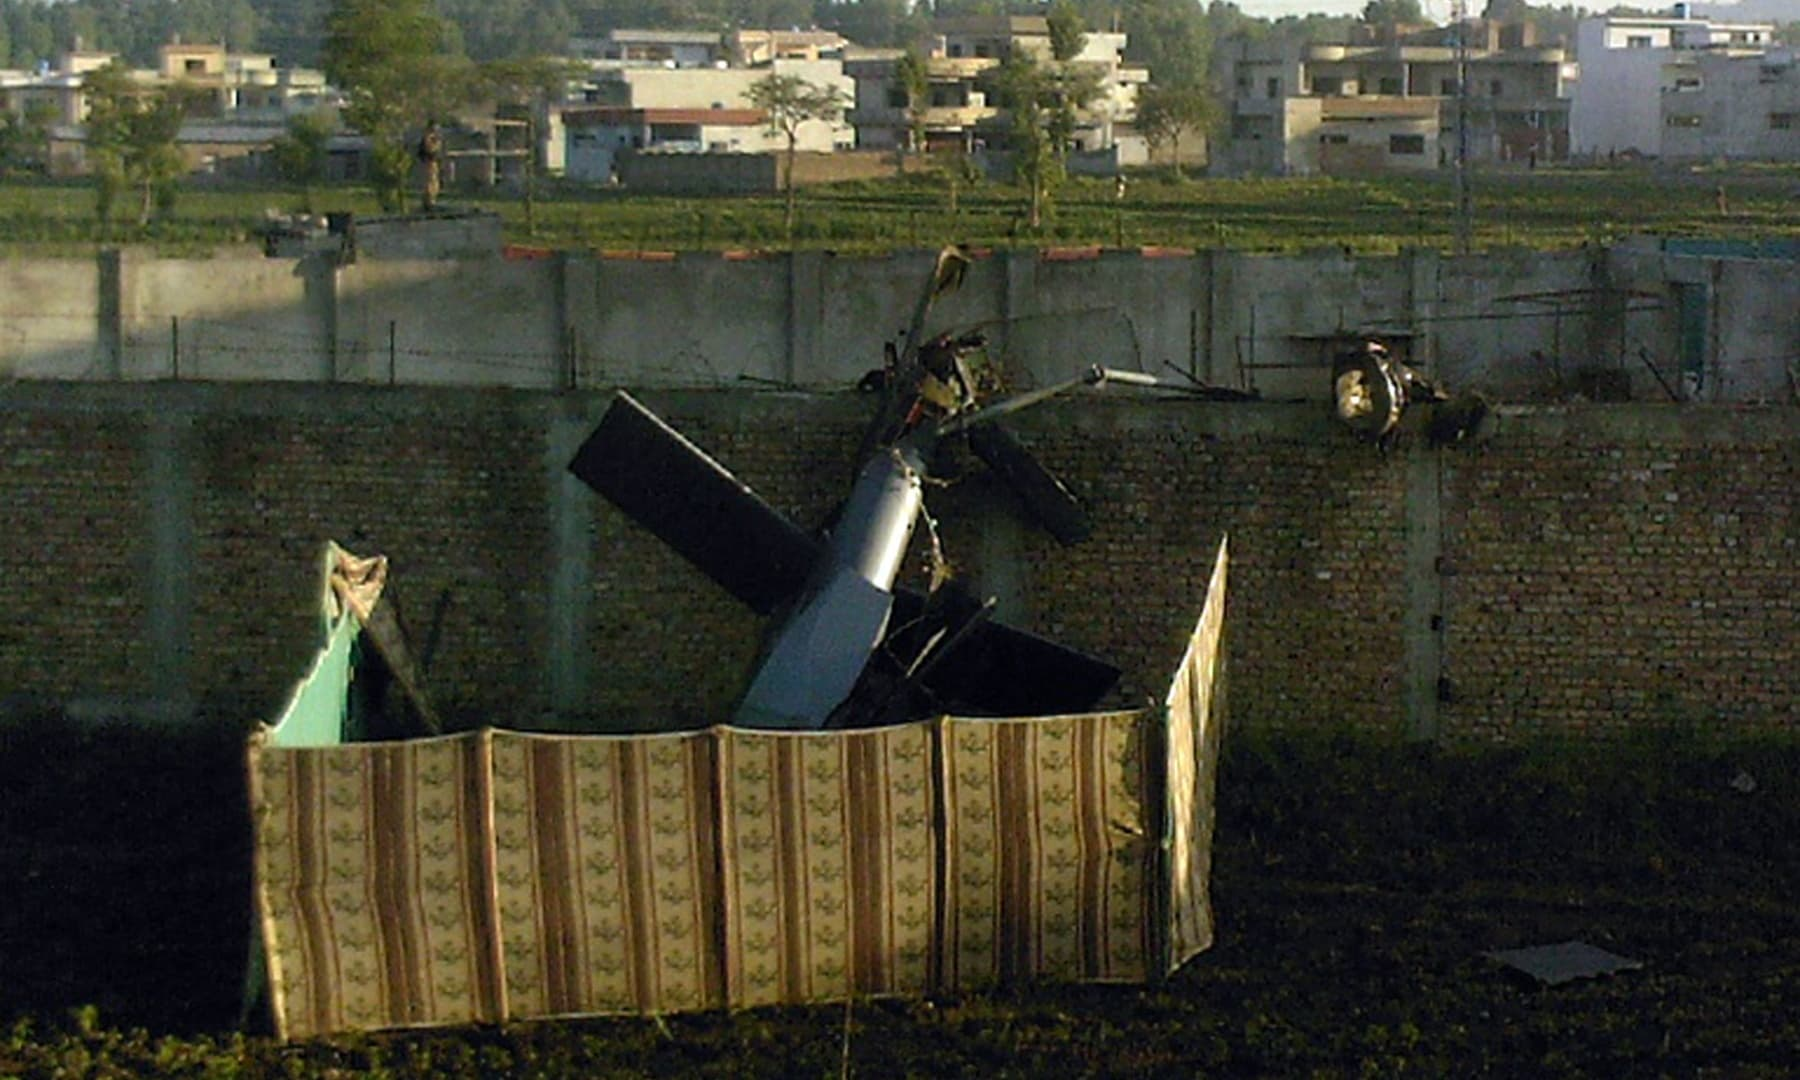 In this file photograph taken on May 2, 2011, a crashed military helicopter is seen near the hideout of Al Qaeda leader Osama bin Laden after a ground operation by US Special Forces in Abbottabad. — AFP